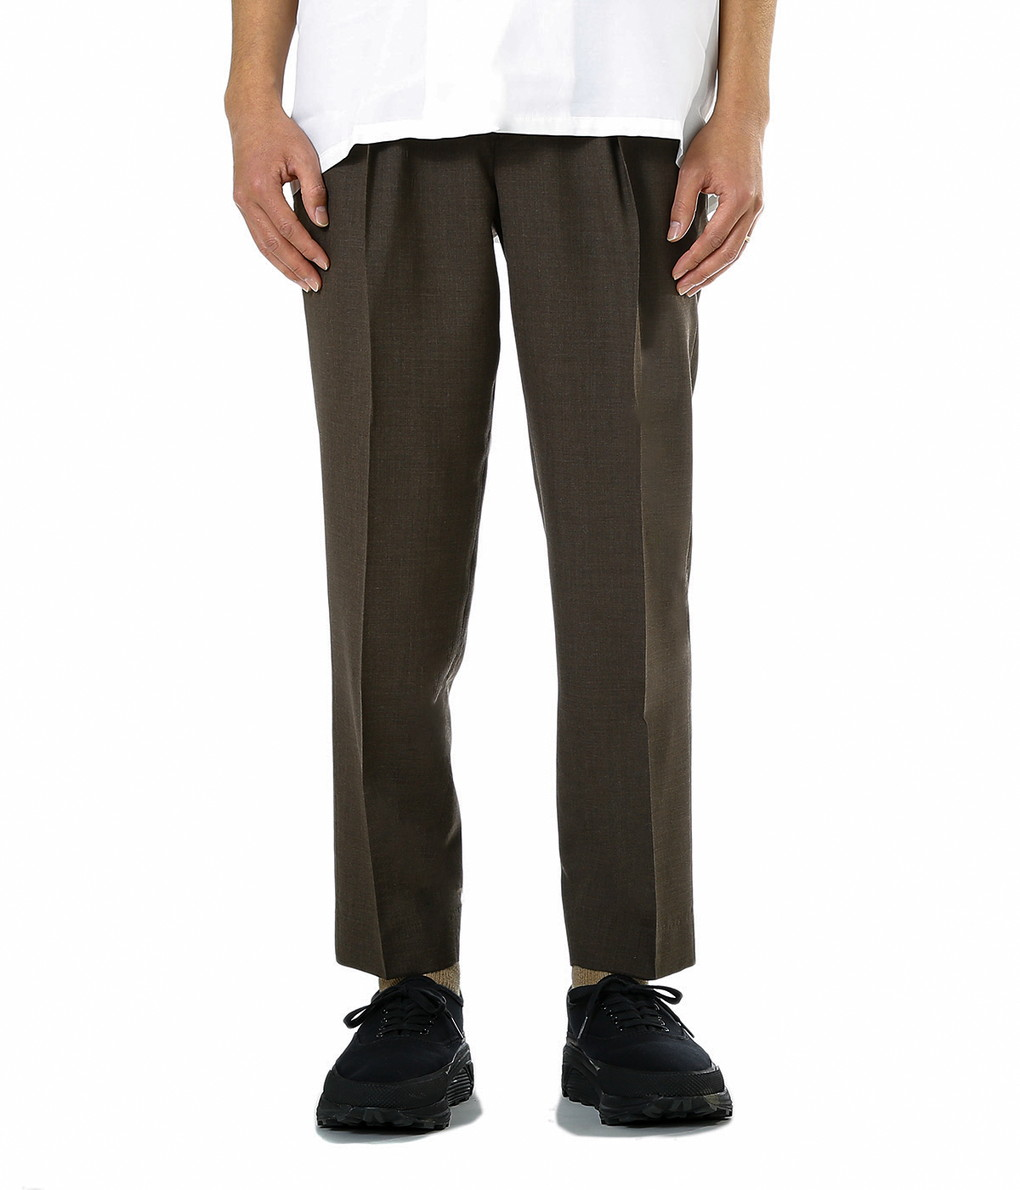 MARKAWARE / マーカウェア : PEG TOP EASY TROUSERS -SUPER 120's WOOL TROPICAL- : ペグトップ イージー トラウザーズ : A19A-12PT01C-wise 【WIS】